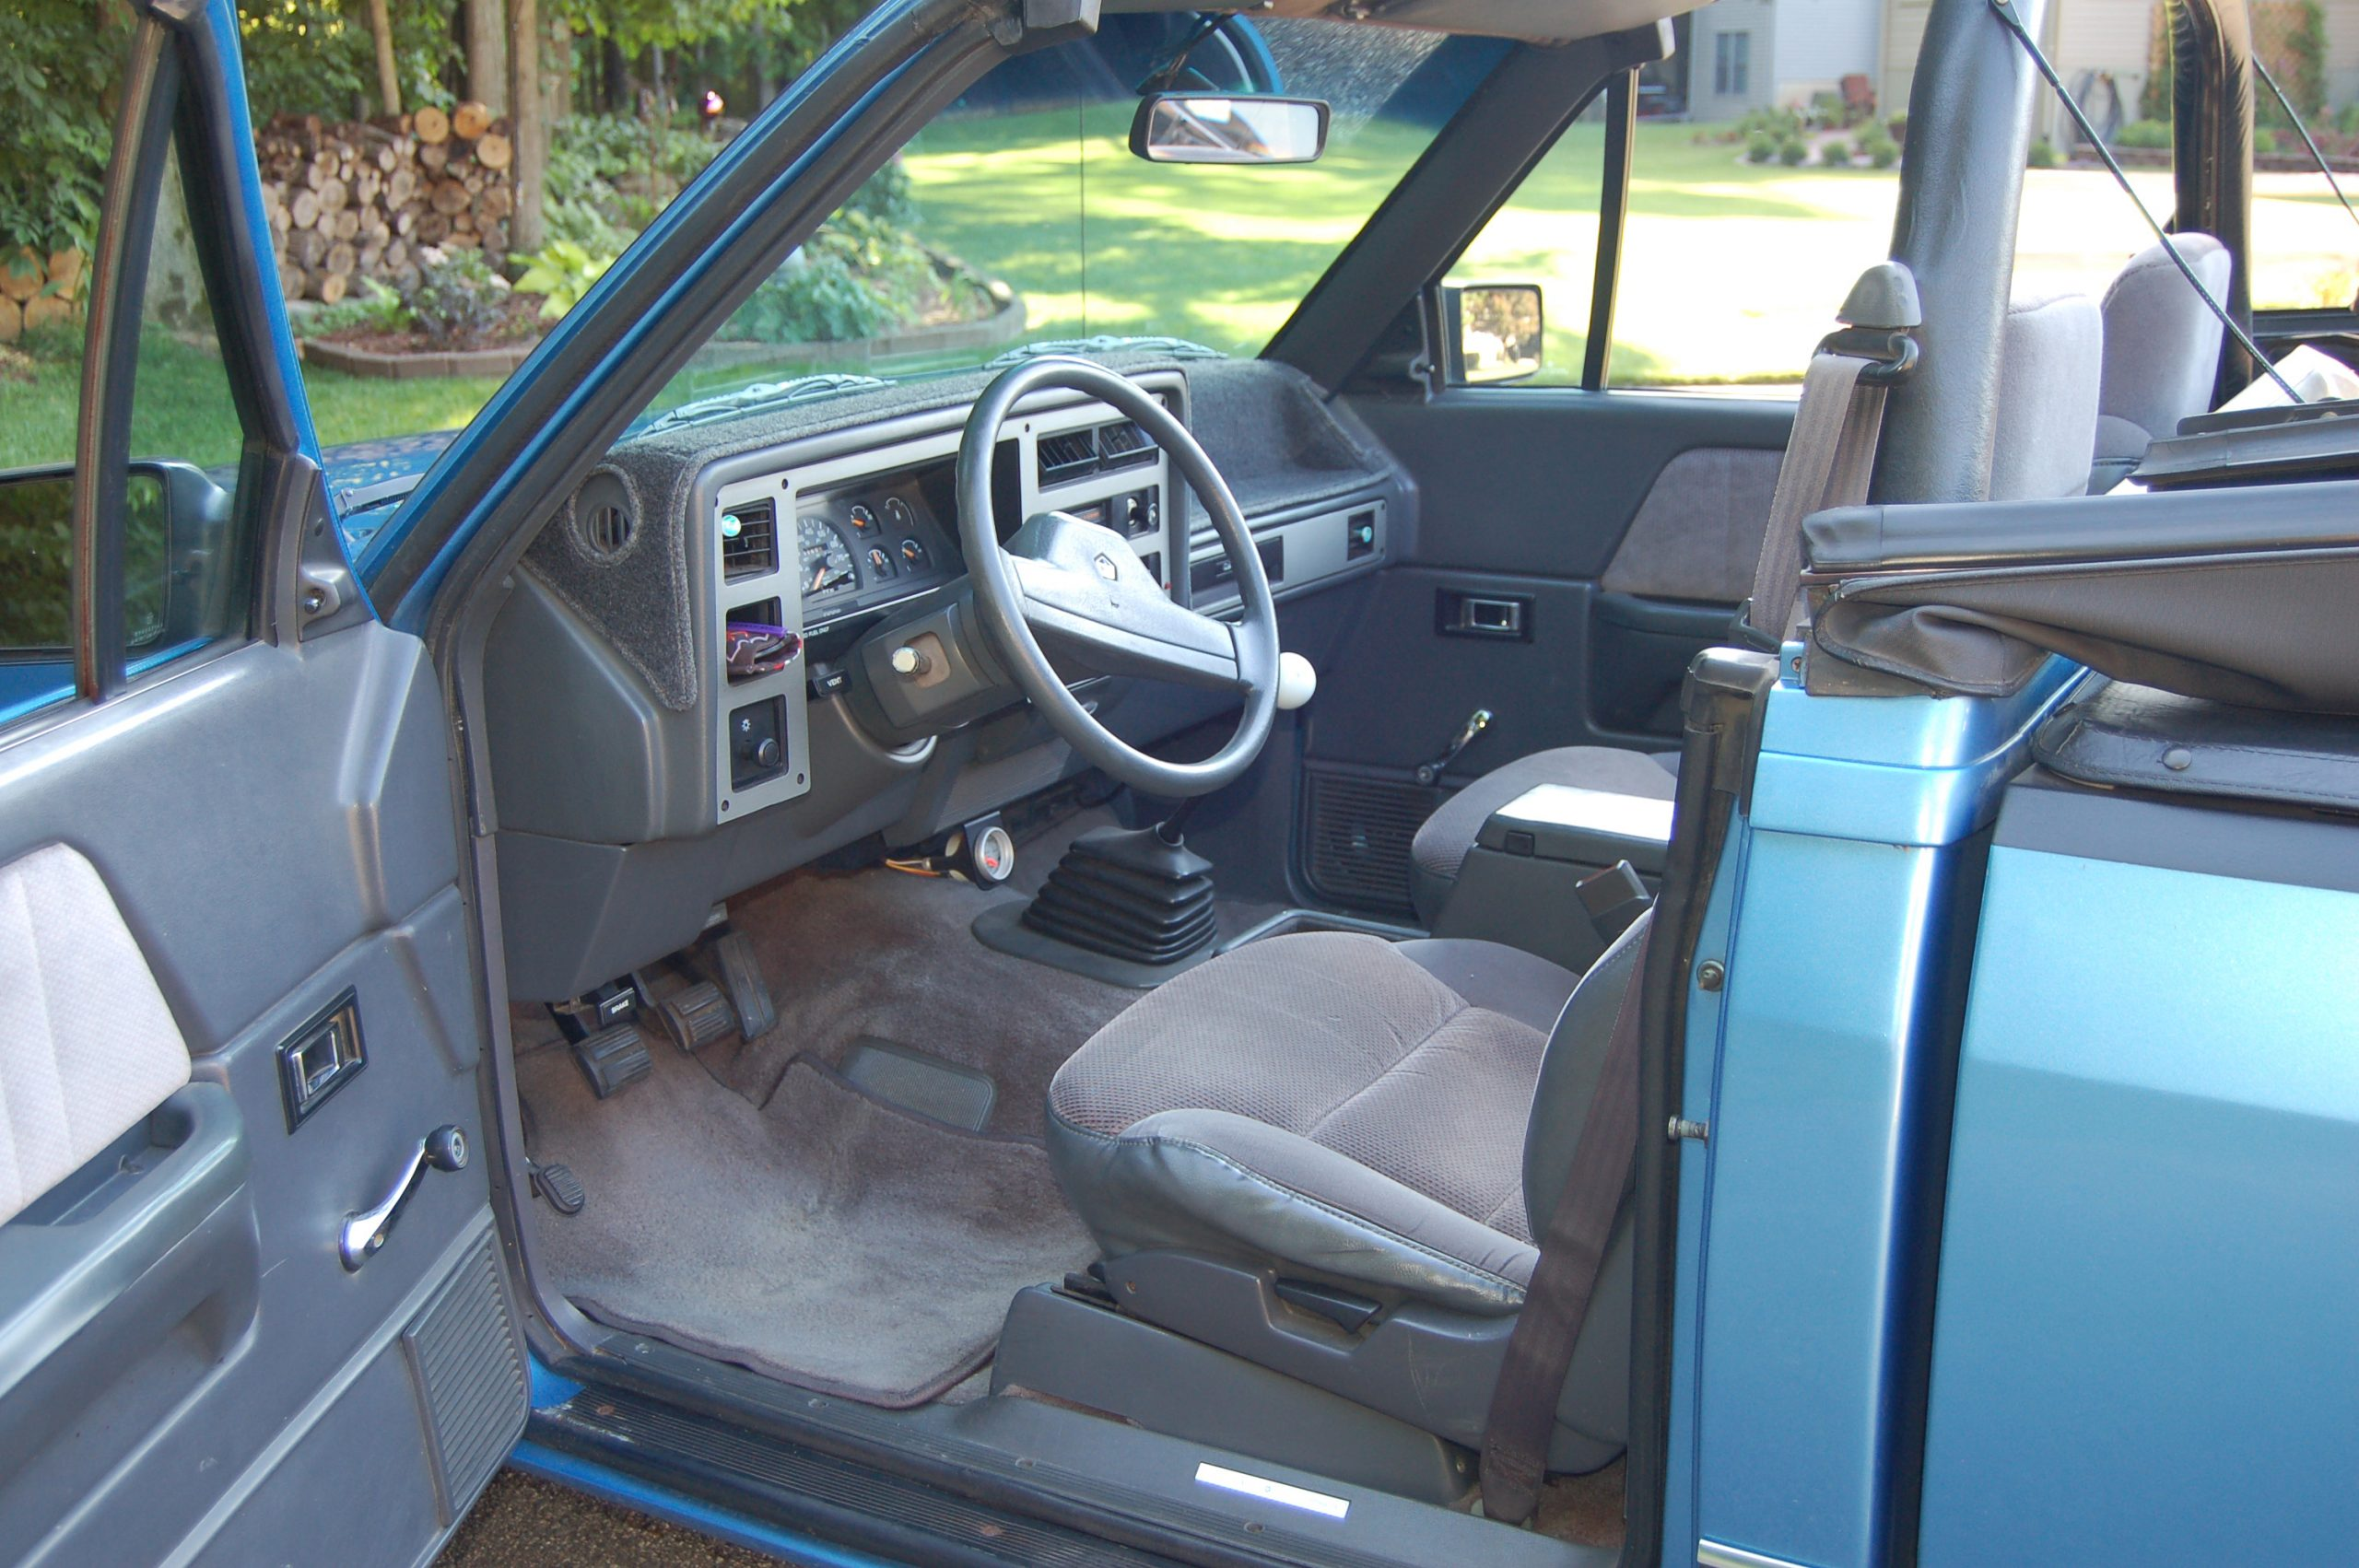 1990 Dodge Dakota Sport Convertible interior from driver side